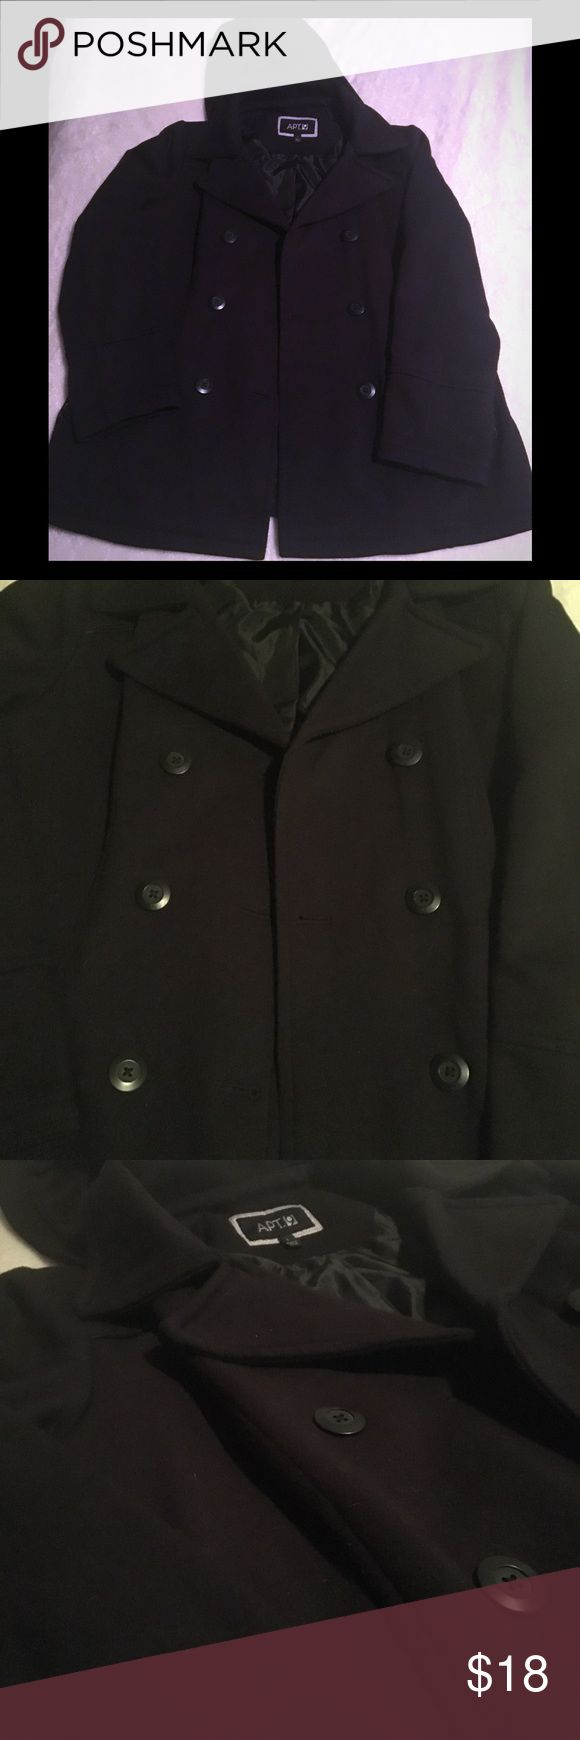 Women's black pea coat Size large. Medium weight. Lined and only worn a few times. Hood is detachable. Apt. 9 Jackets & Coats Pea Coats